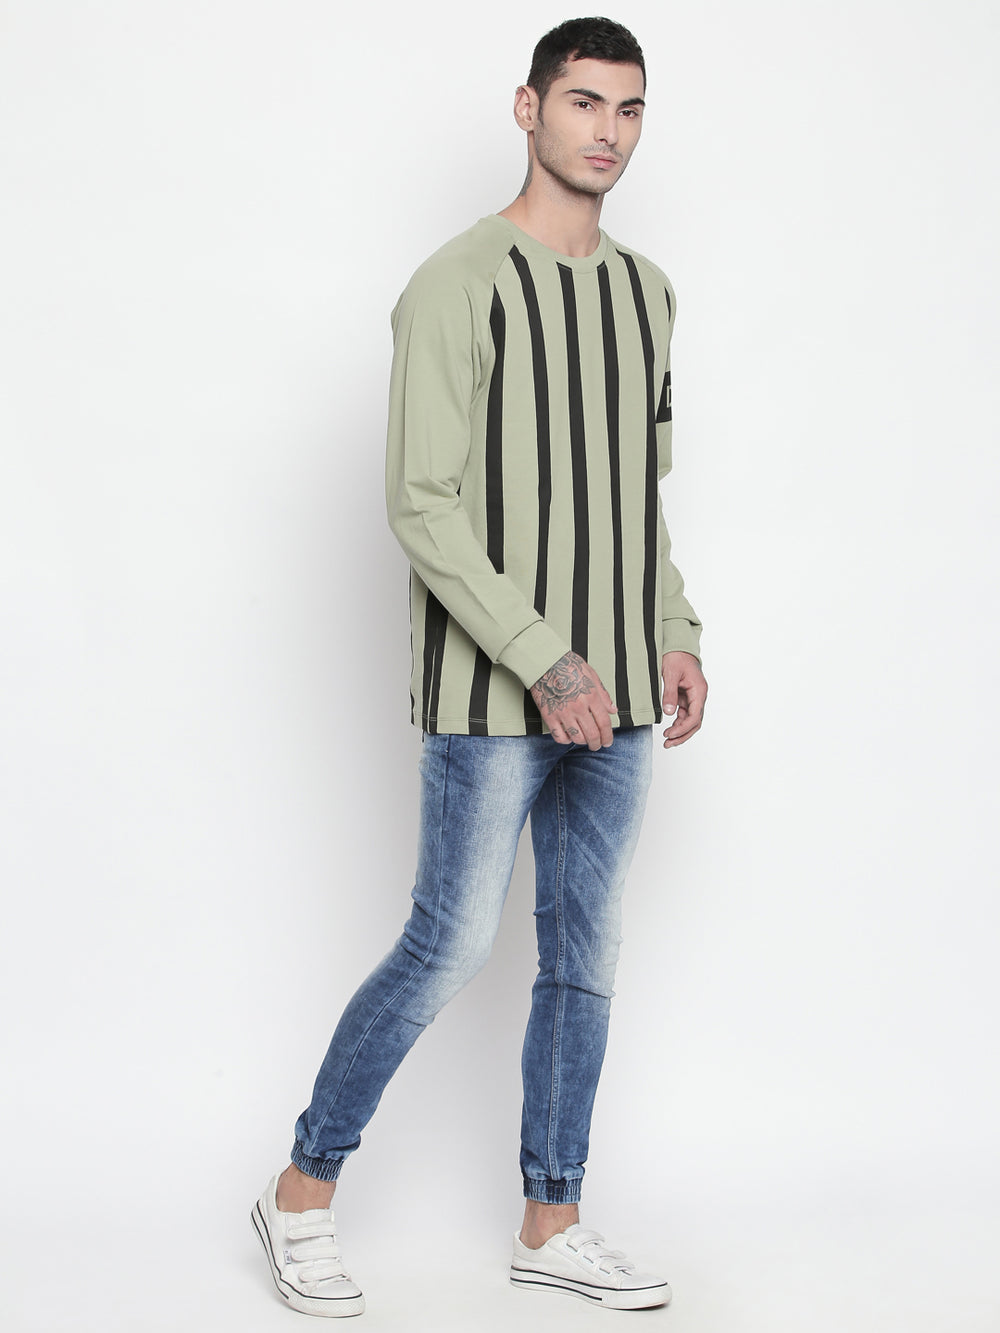 Disrupt Light Olive Round Neck Full Sleeve T-shirt For Men